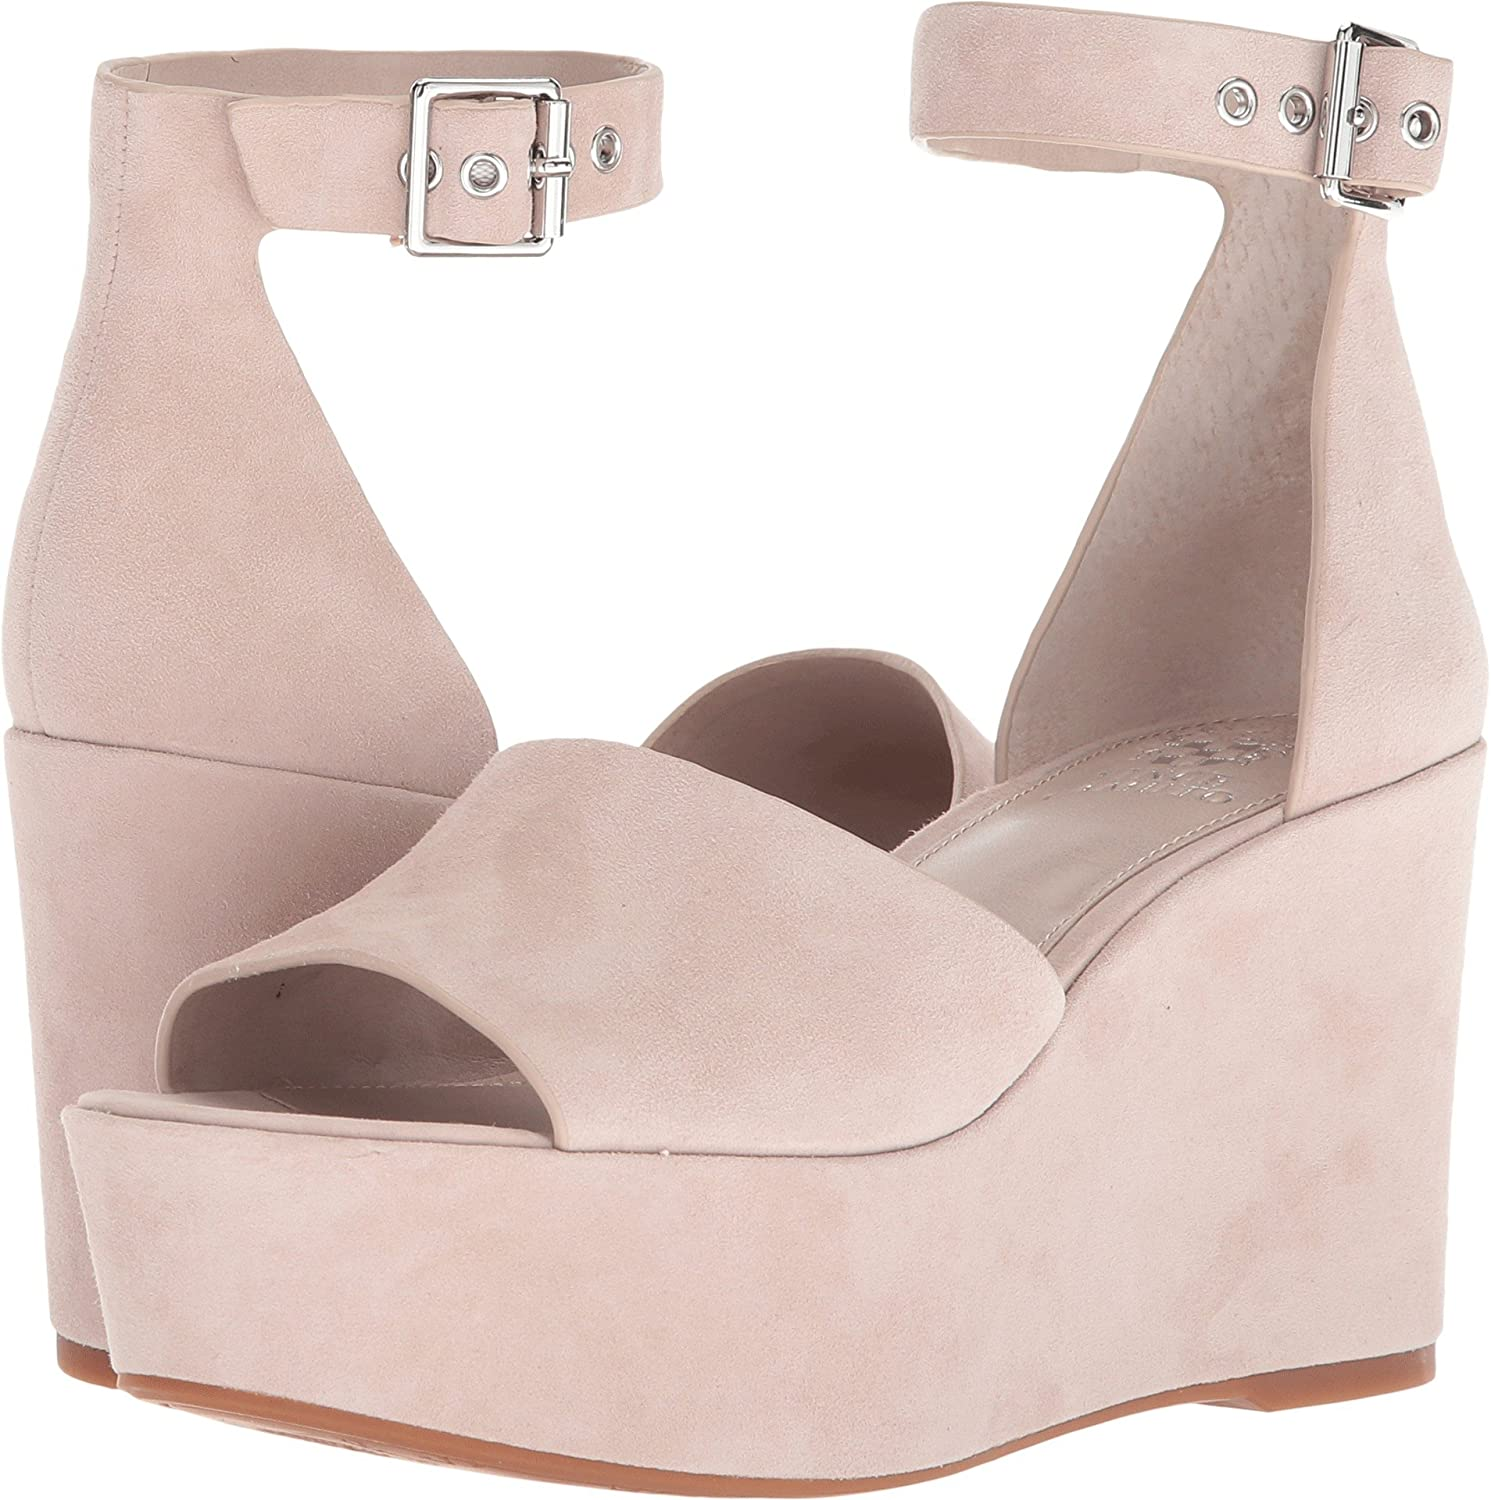 98f2302cae1 Vince Camuto Women s Korista Tipsy Taupe 11 M US  Amazon.co.uk  Shoes   Bags